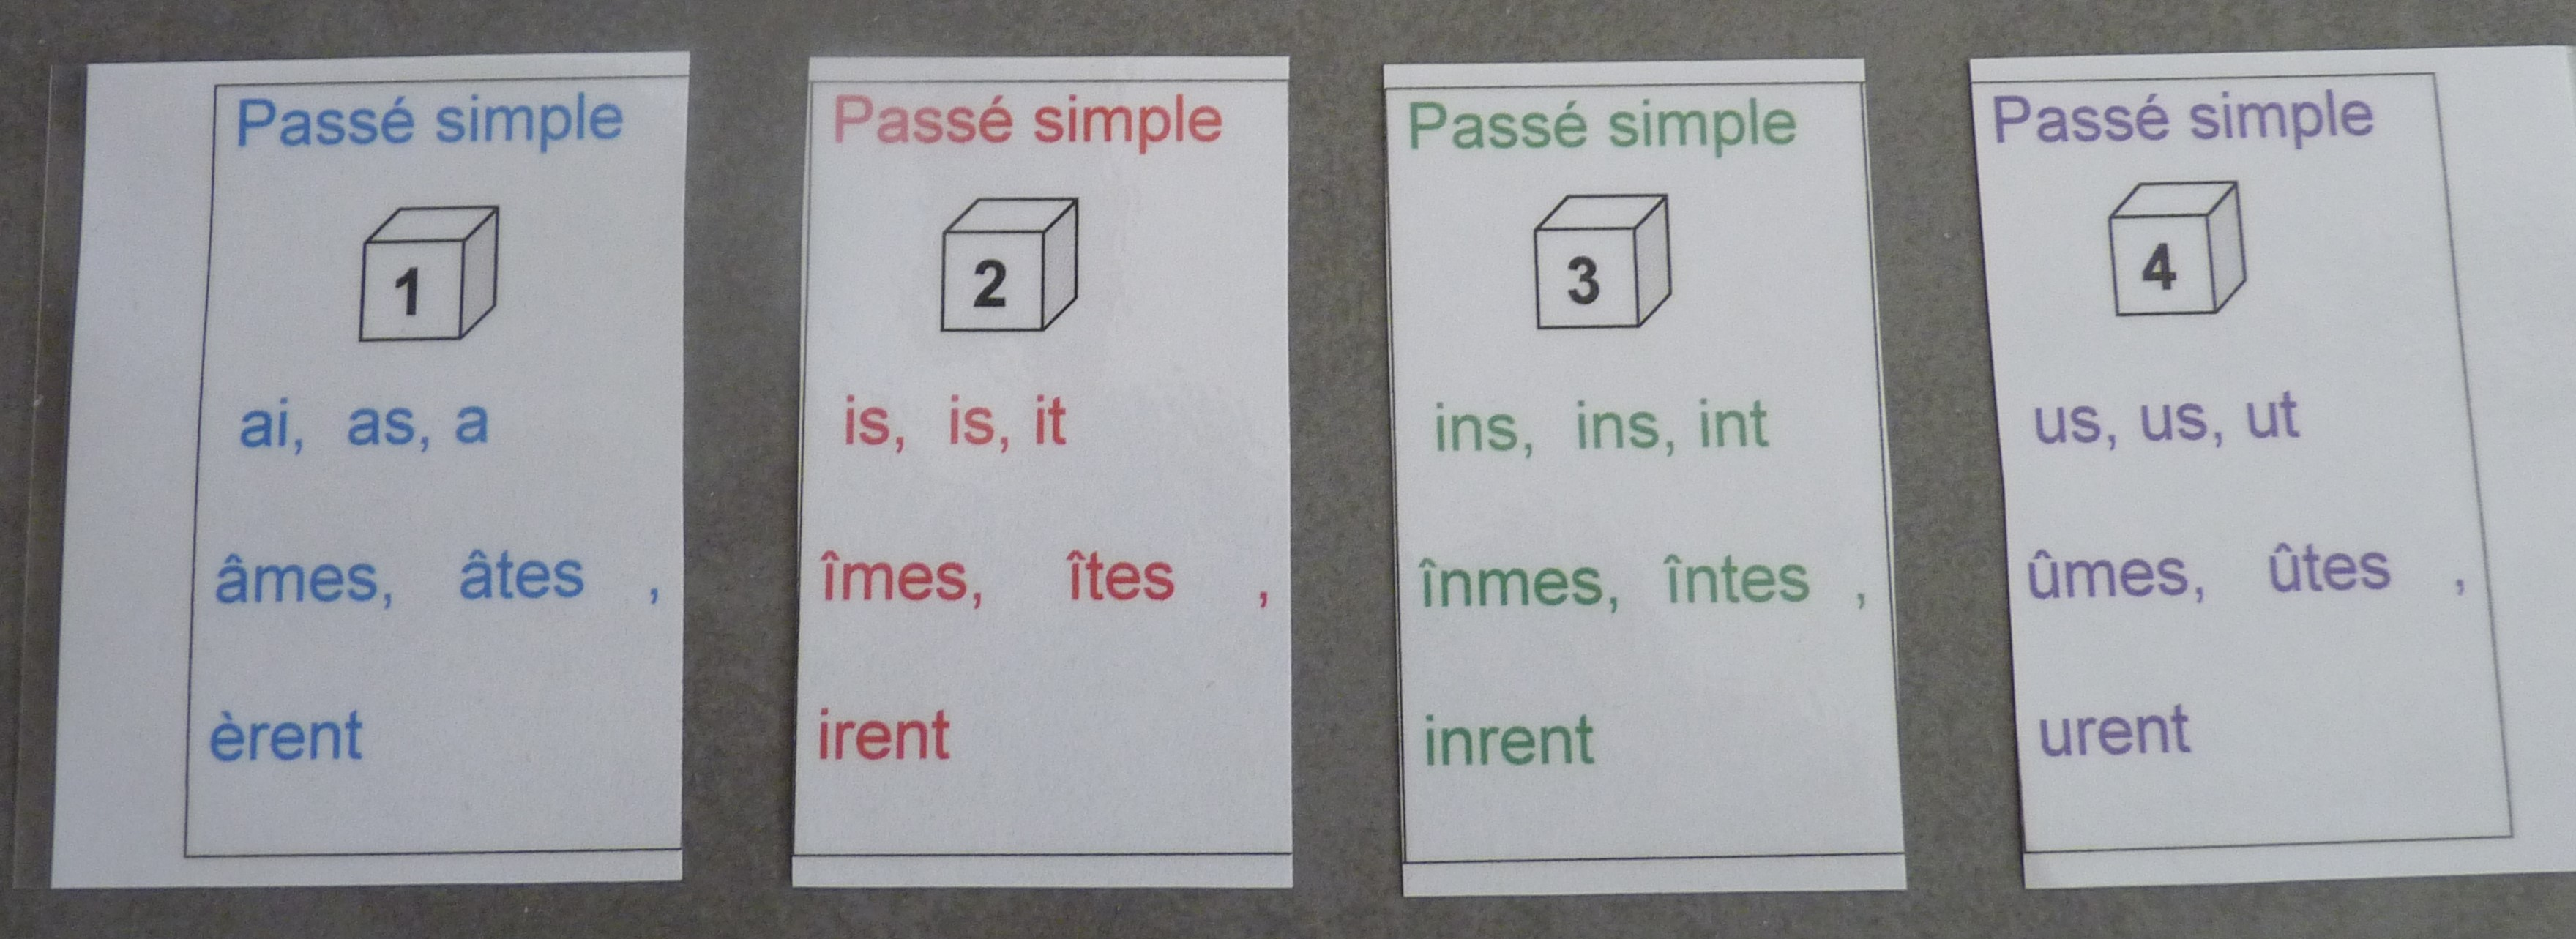 conjugaison de essayer au passe simple